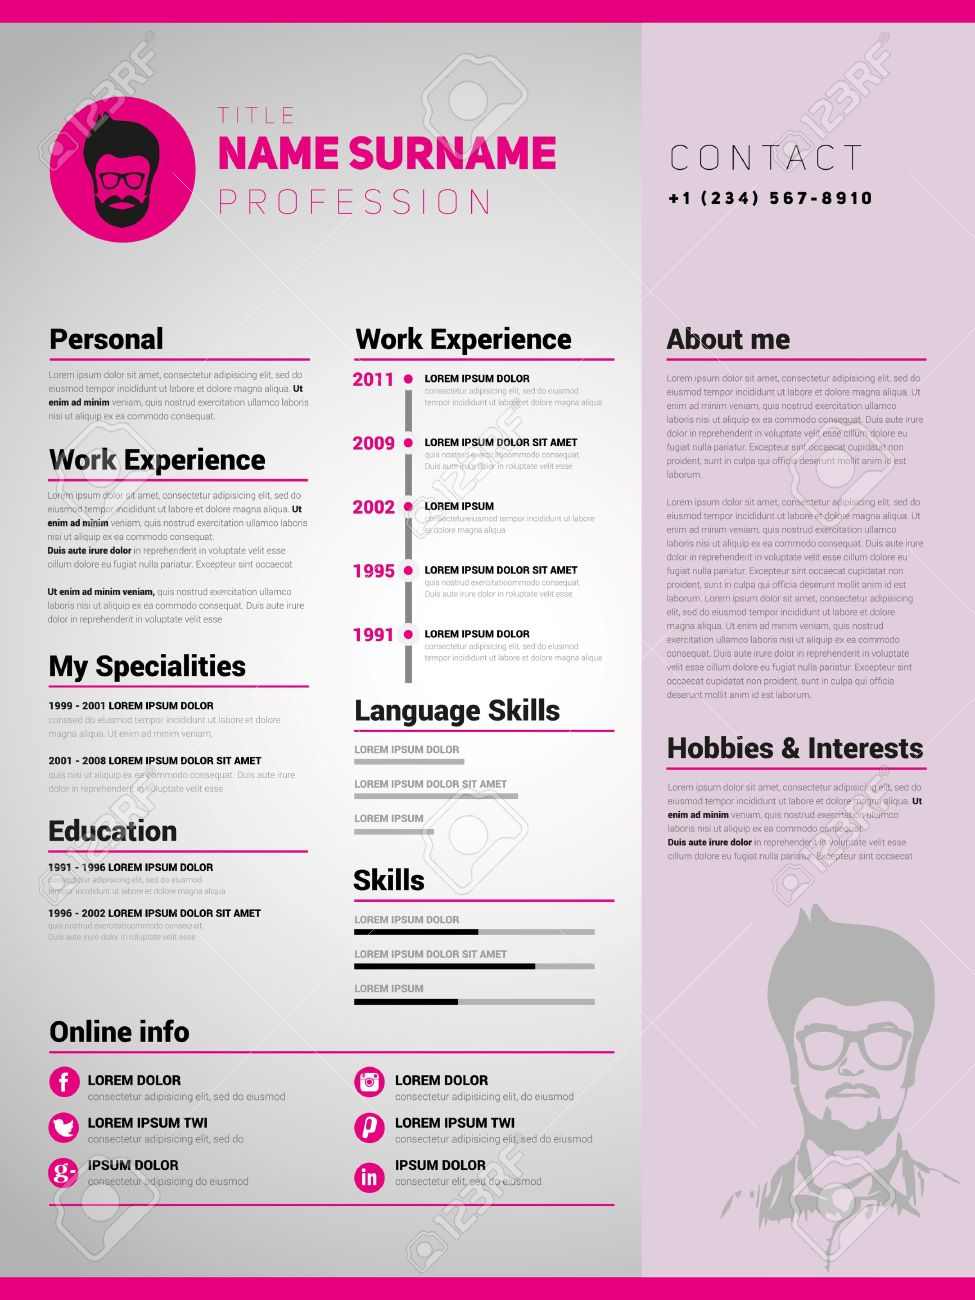 resume template mini st cv vector design royalty resume template mini st cv vector design stock vector 44831849